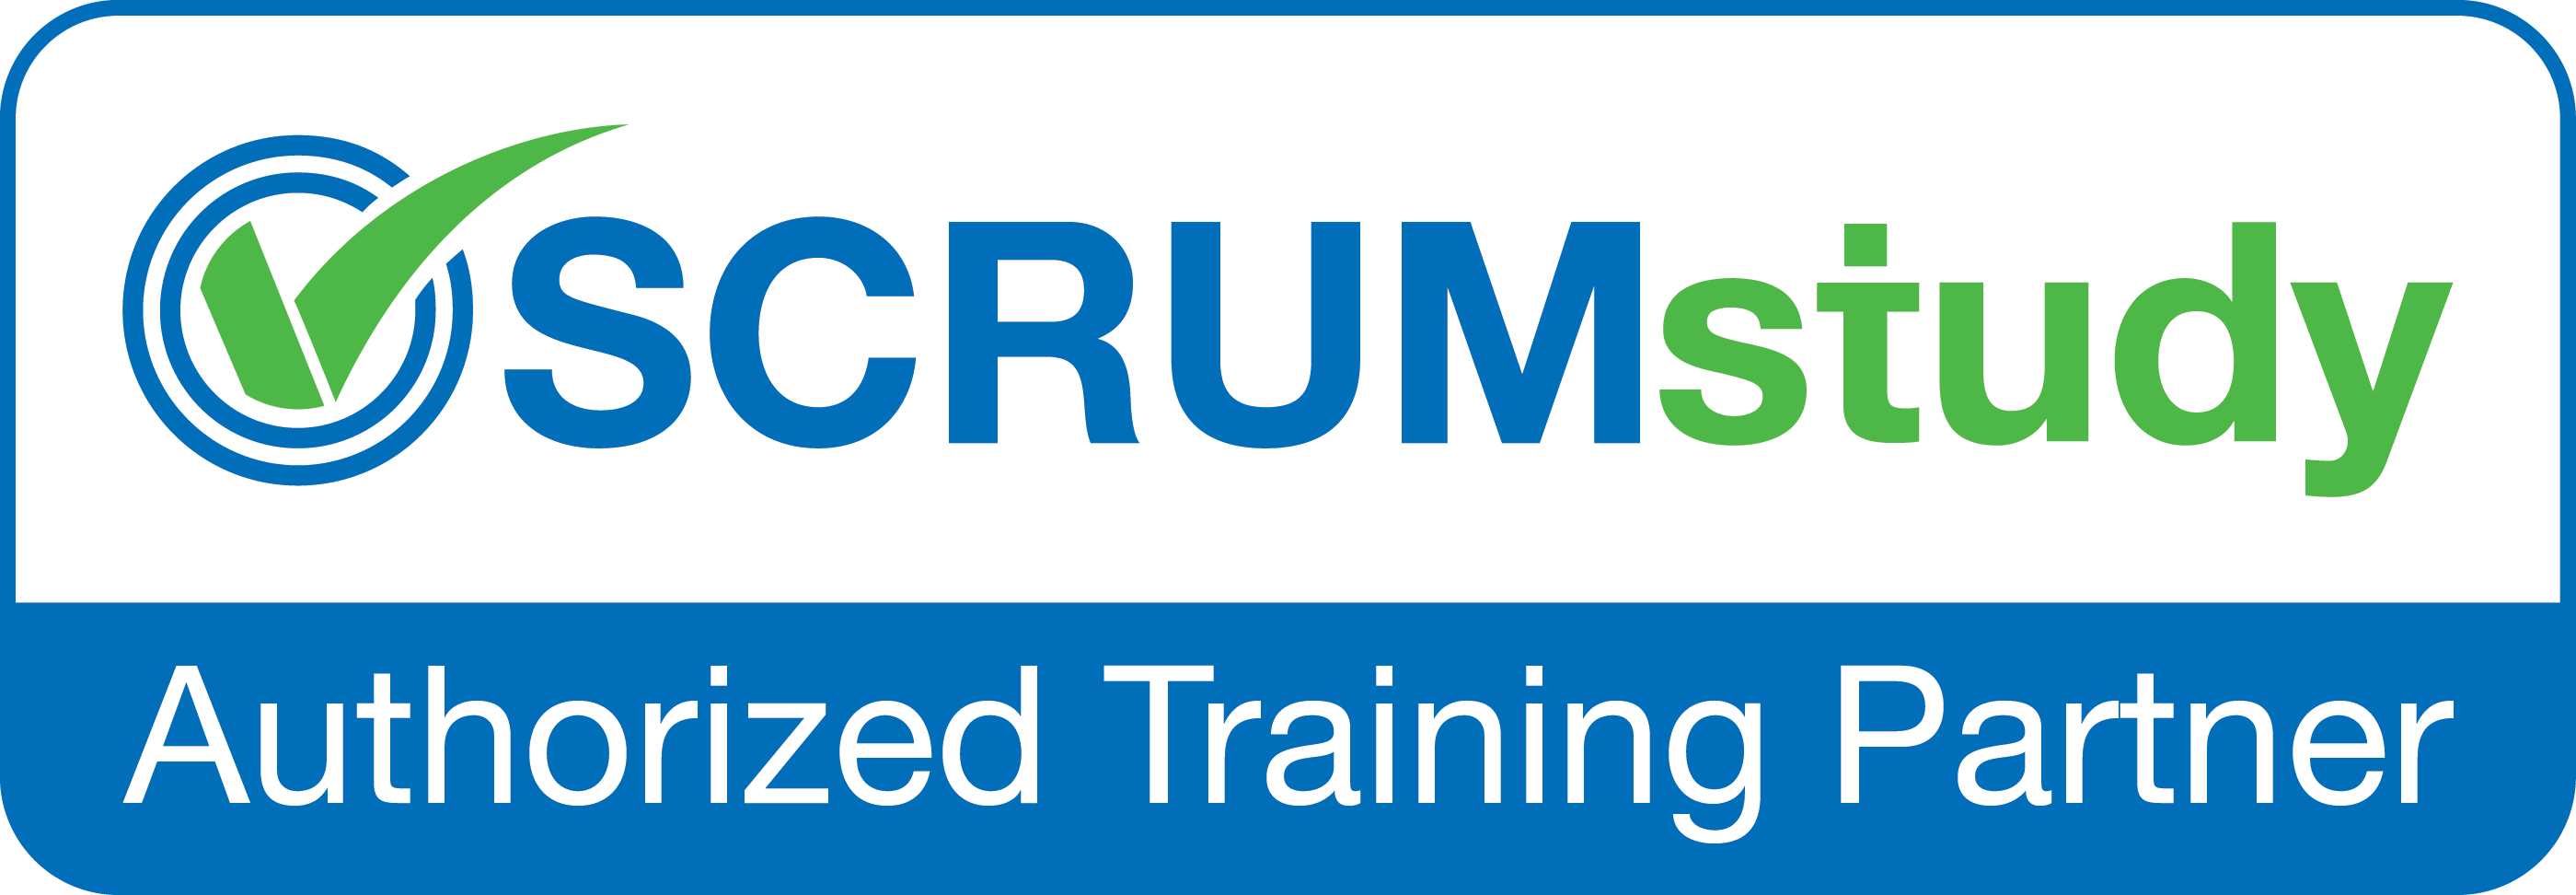 scrum body logo